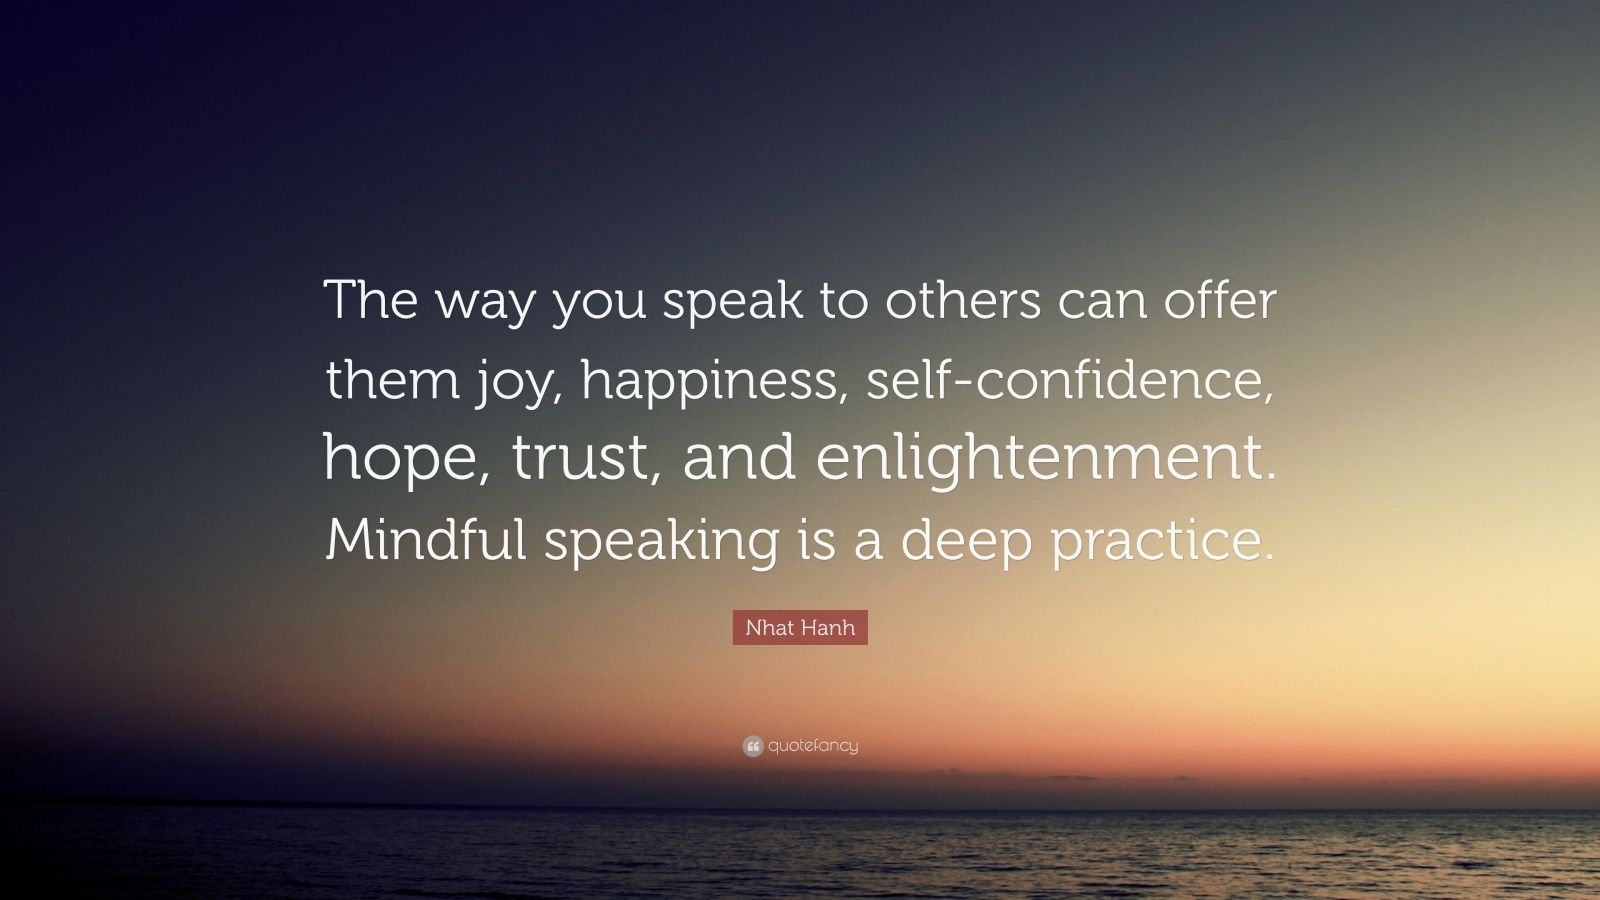 Swami Vivekananda Quotes Wallpaper Nhat Hanh Quote The Way You Speak To Others Can Offer